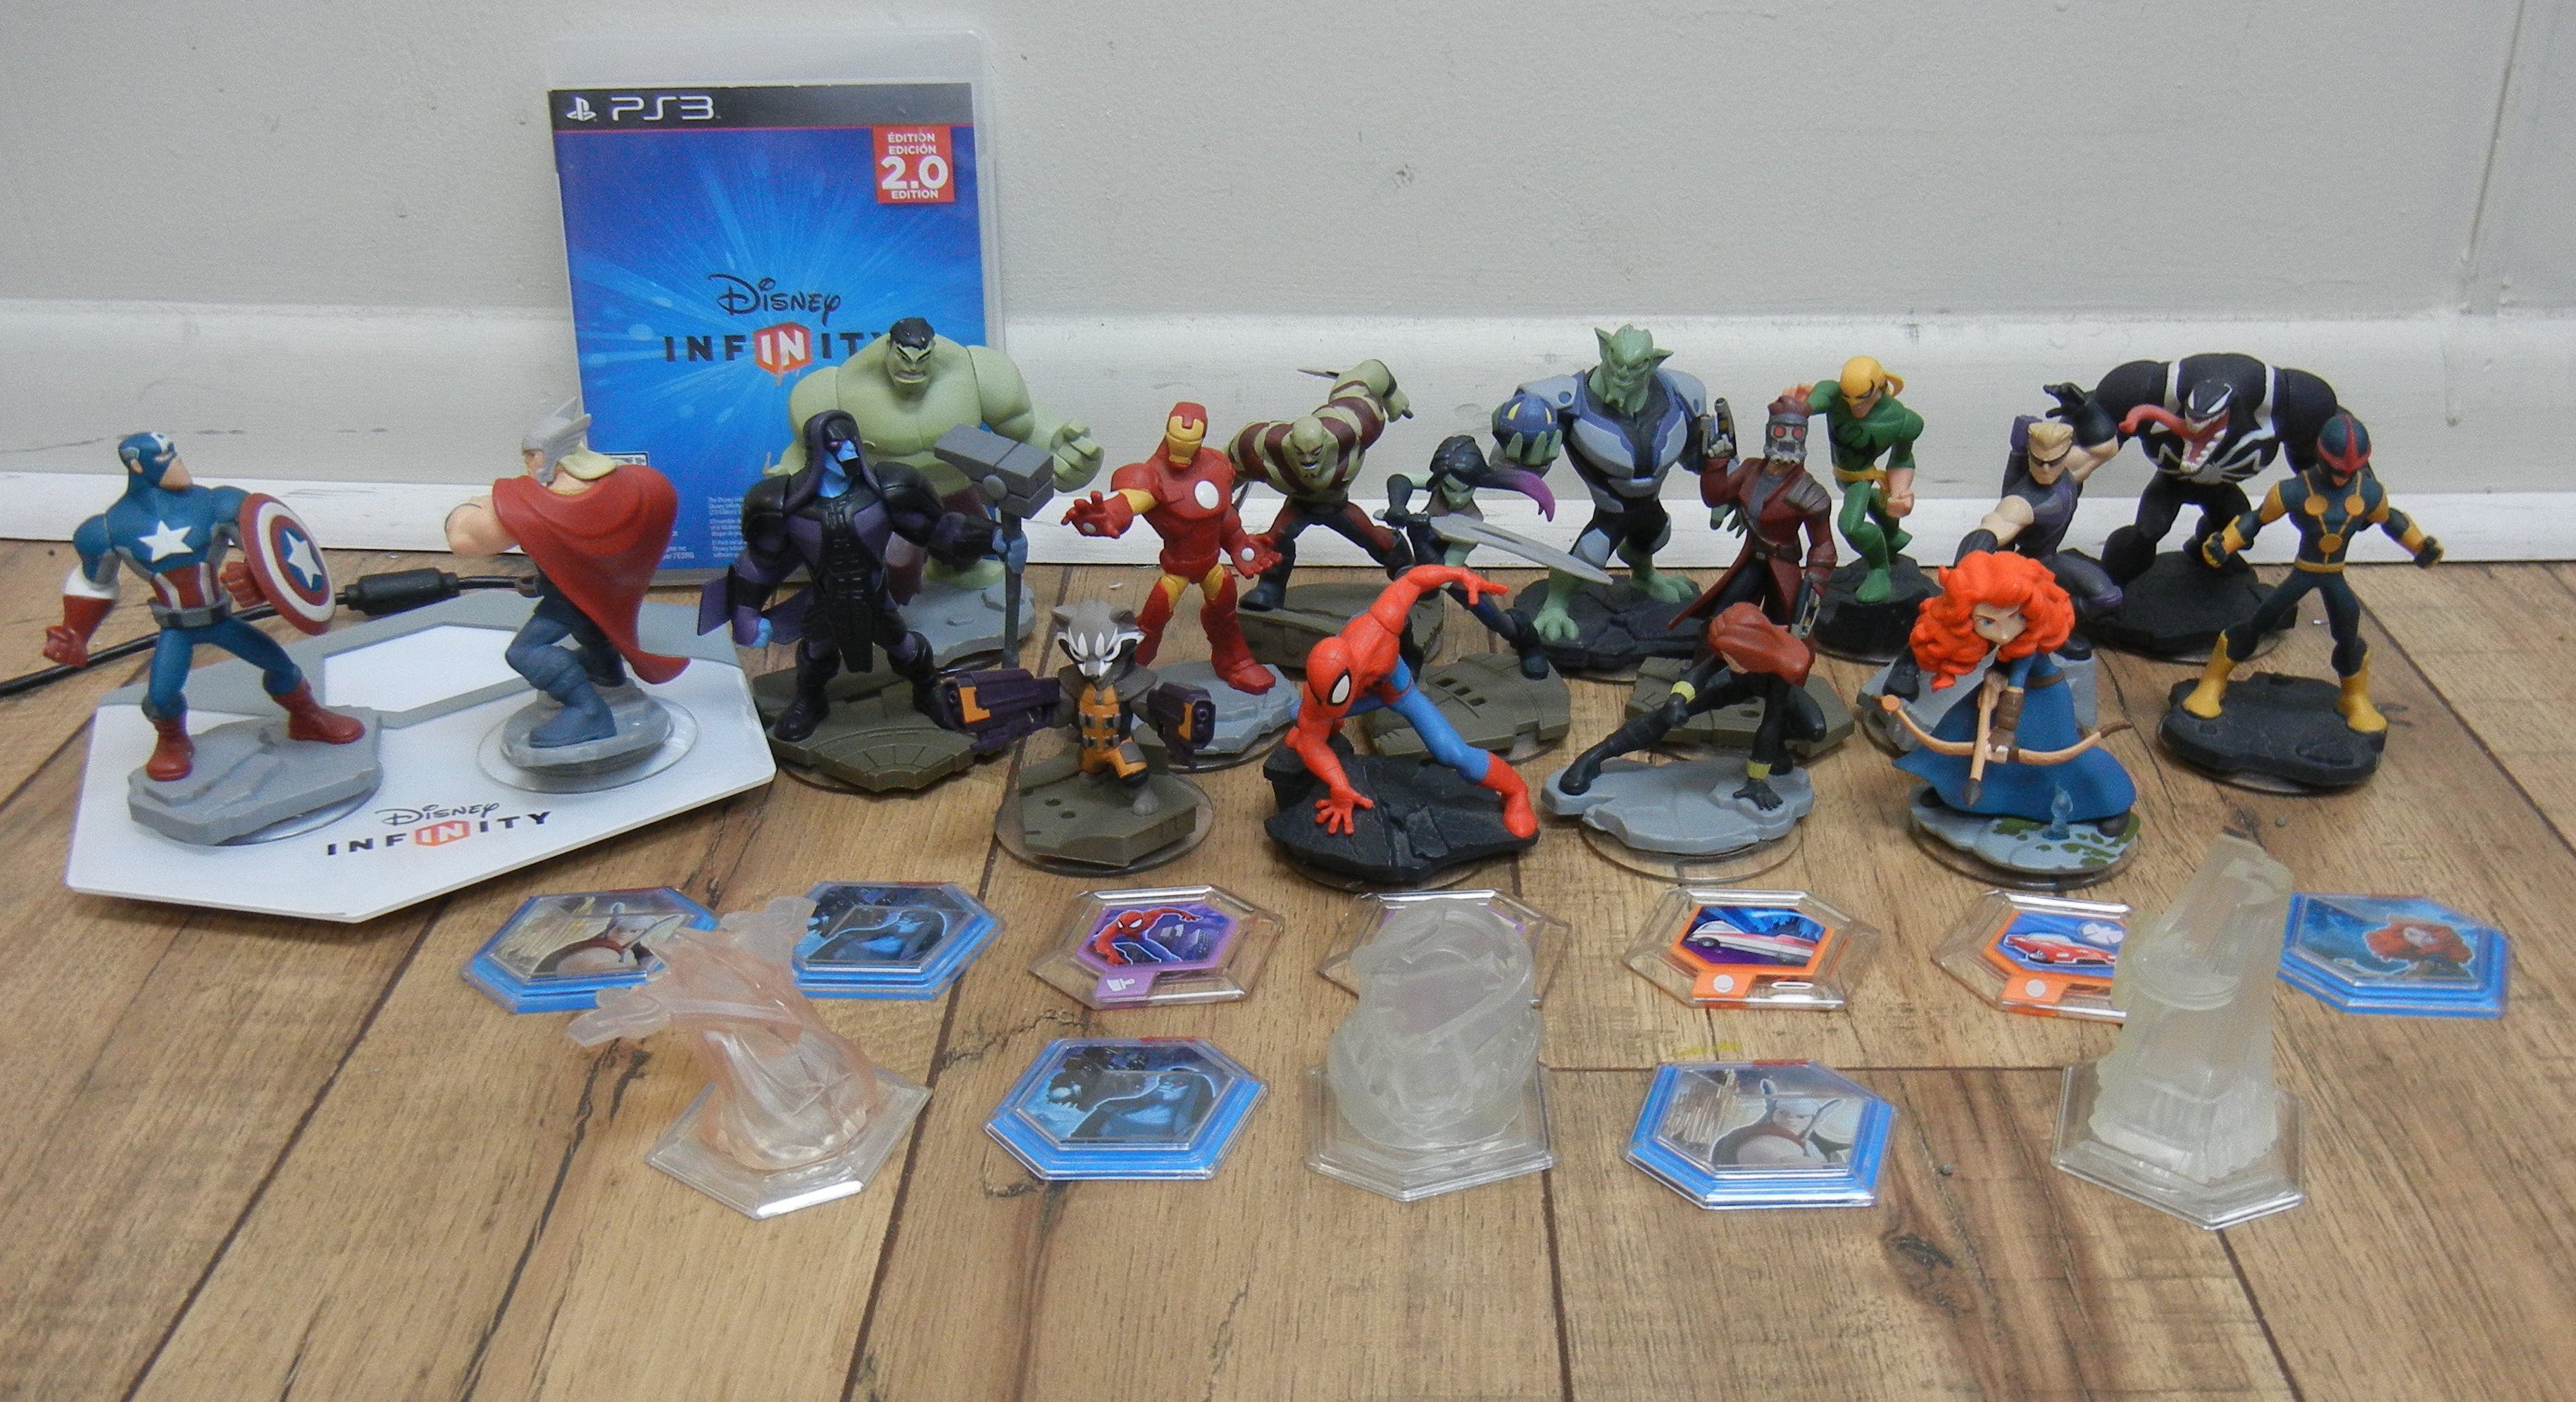 DISNEY INFINITY WITH CHARACTERS- PS 3 GAME